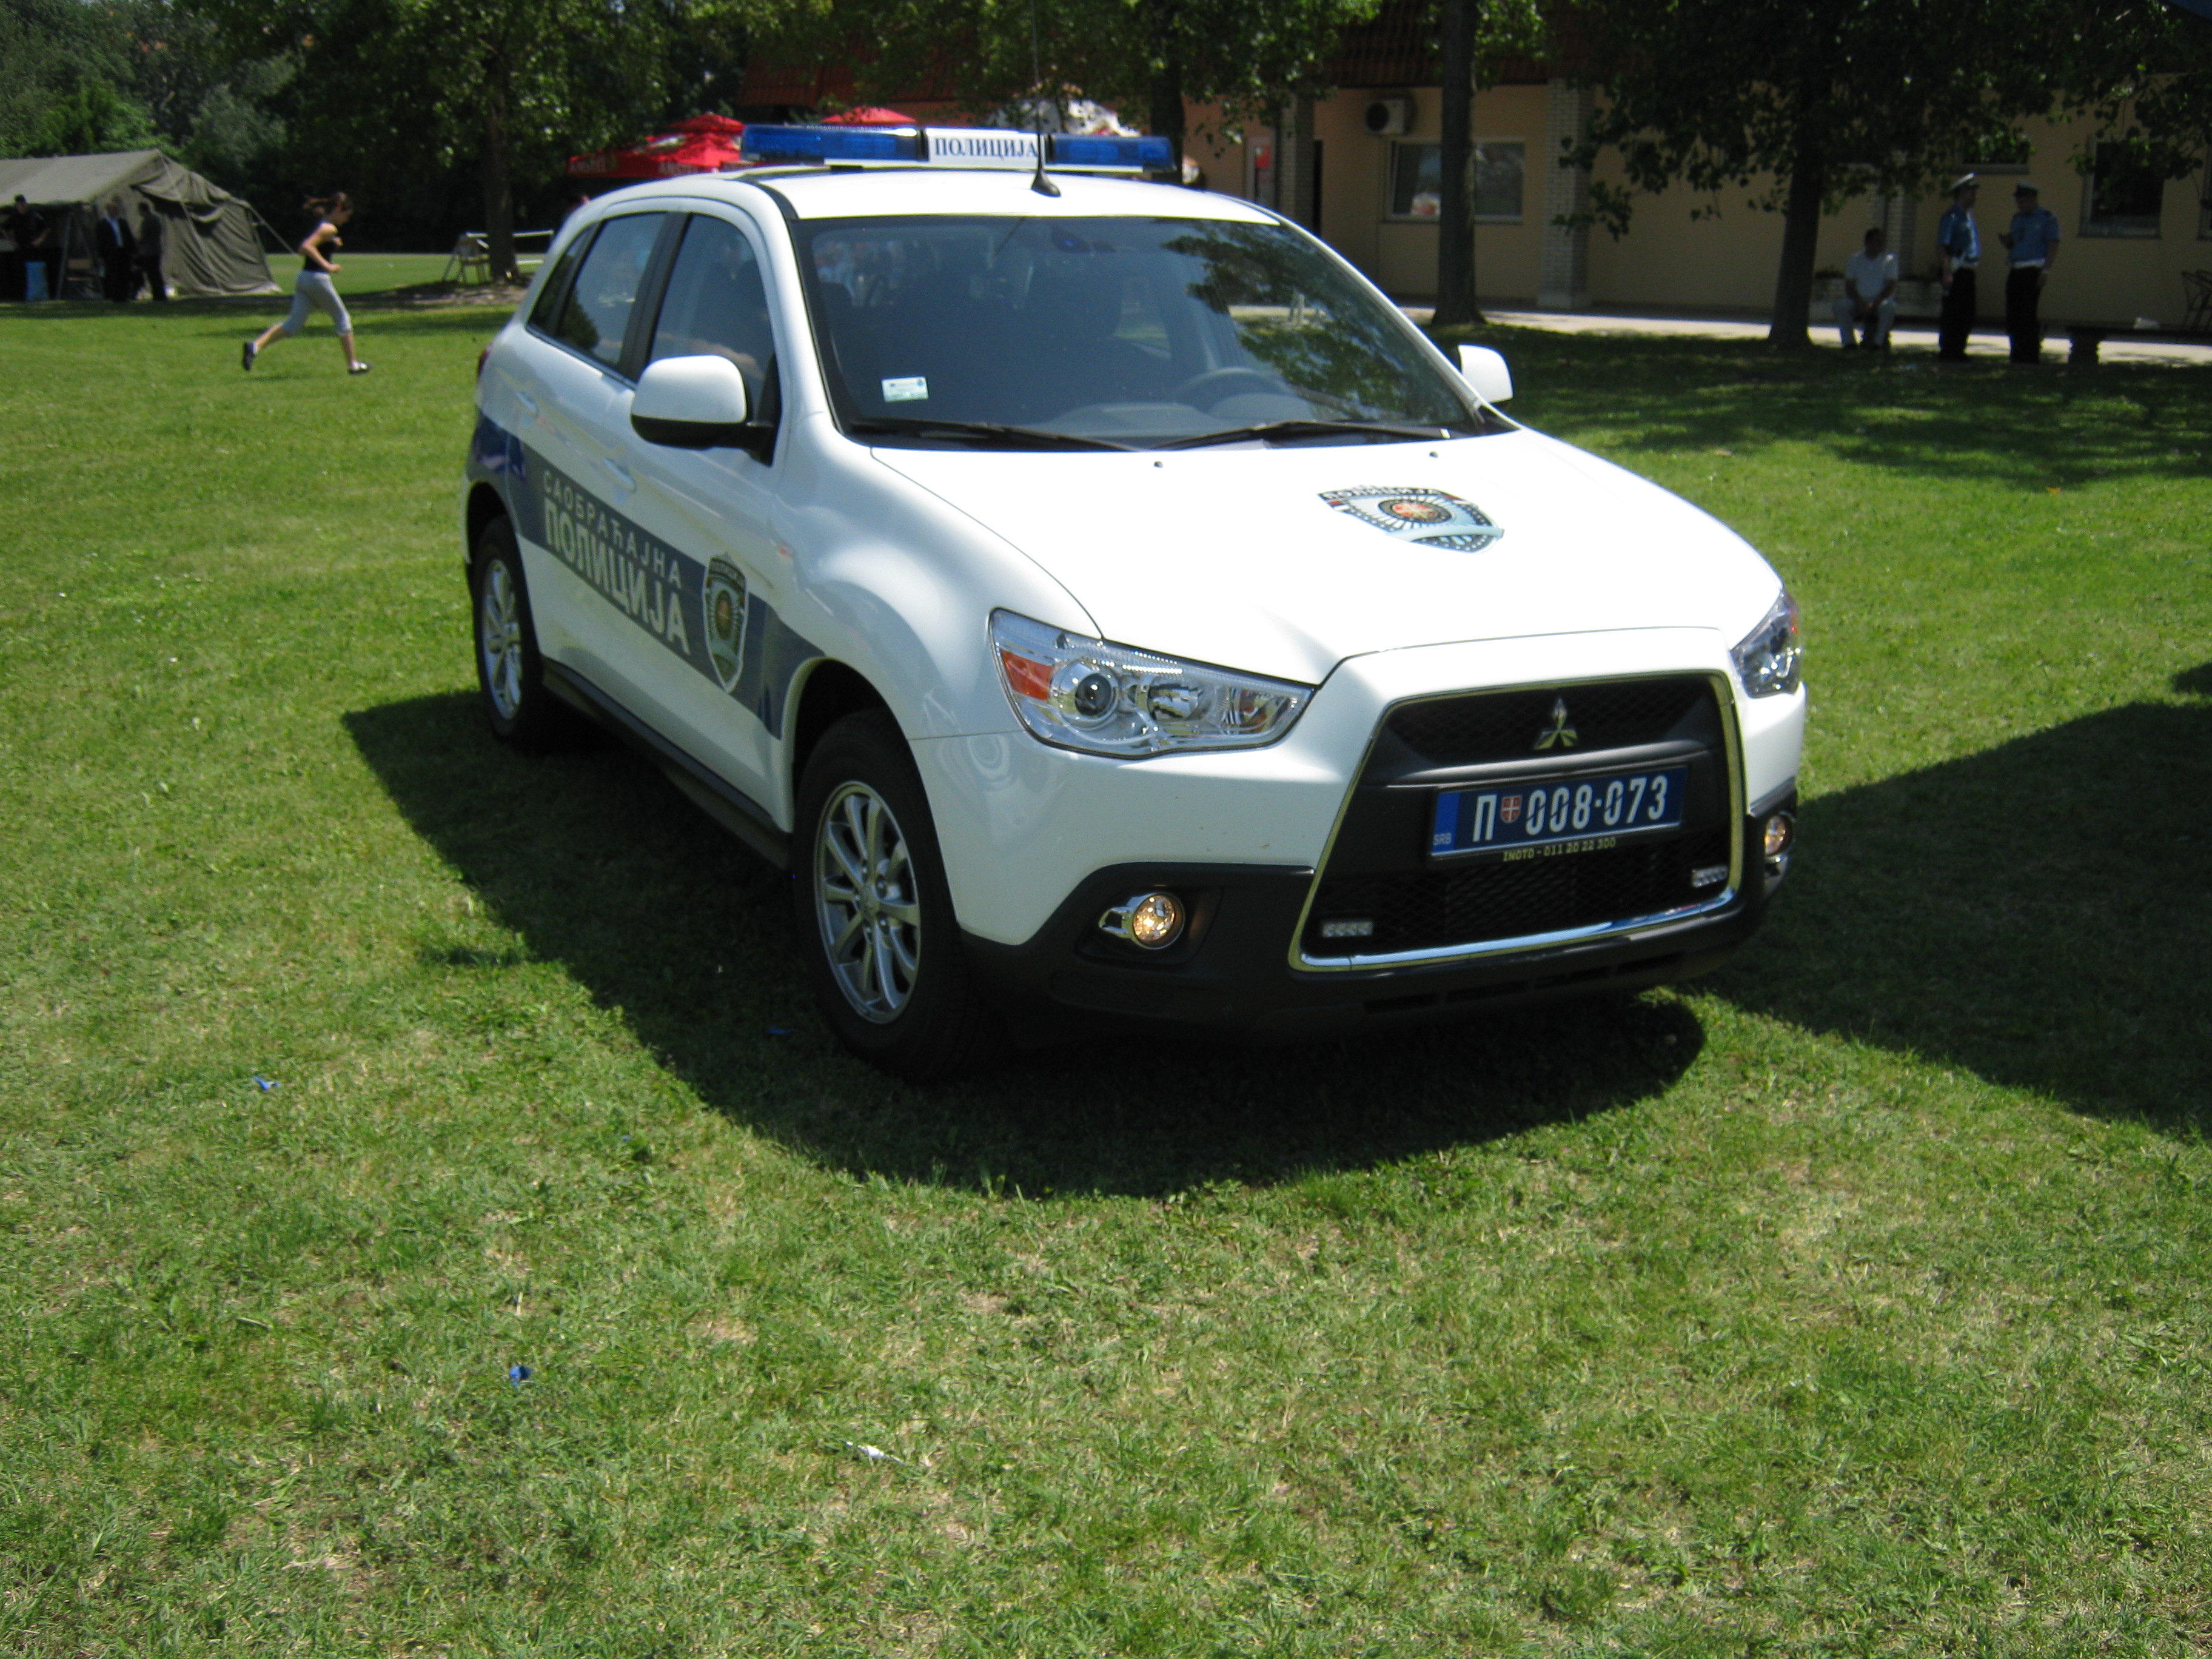 Used Police Cars For Sale In Michigan